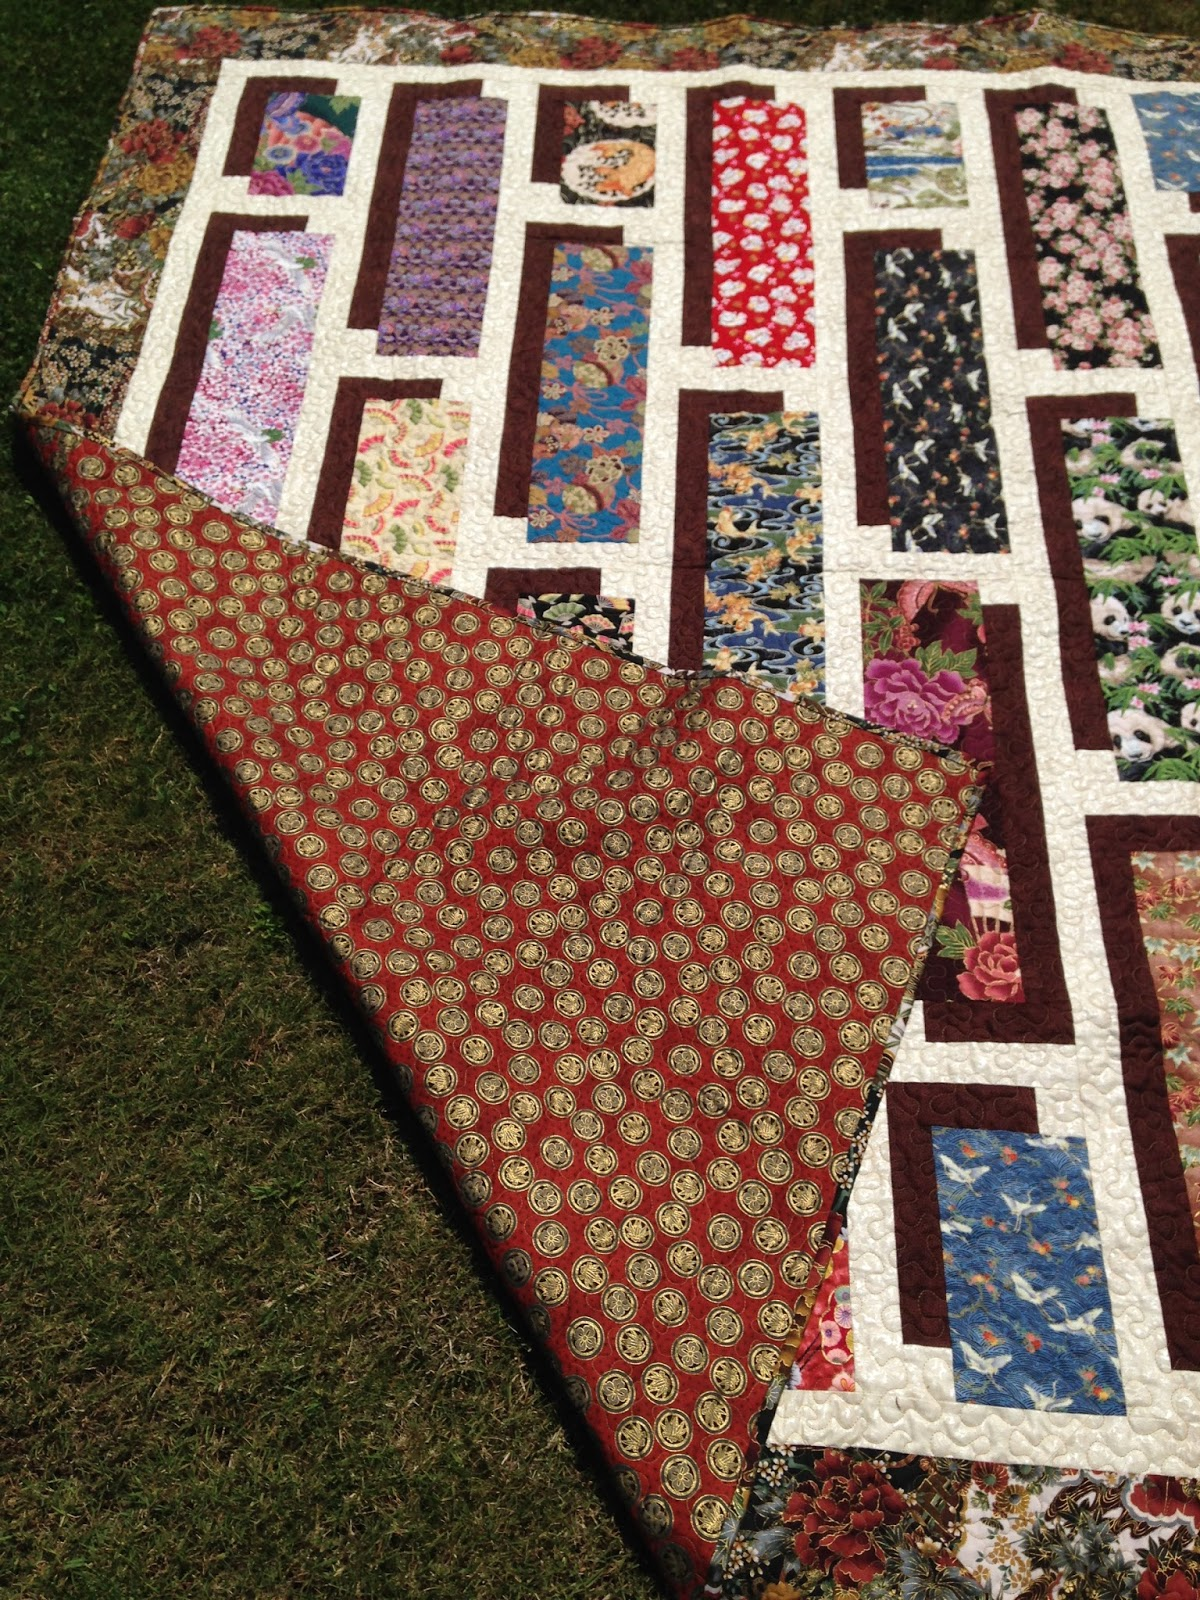 Wren S Nest 2016 Finished Quilts Asian Shadow Box Quilt 9